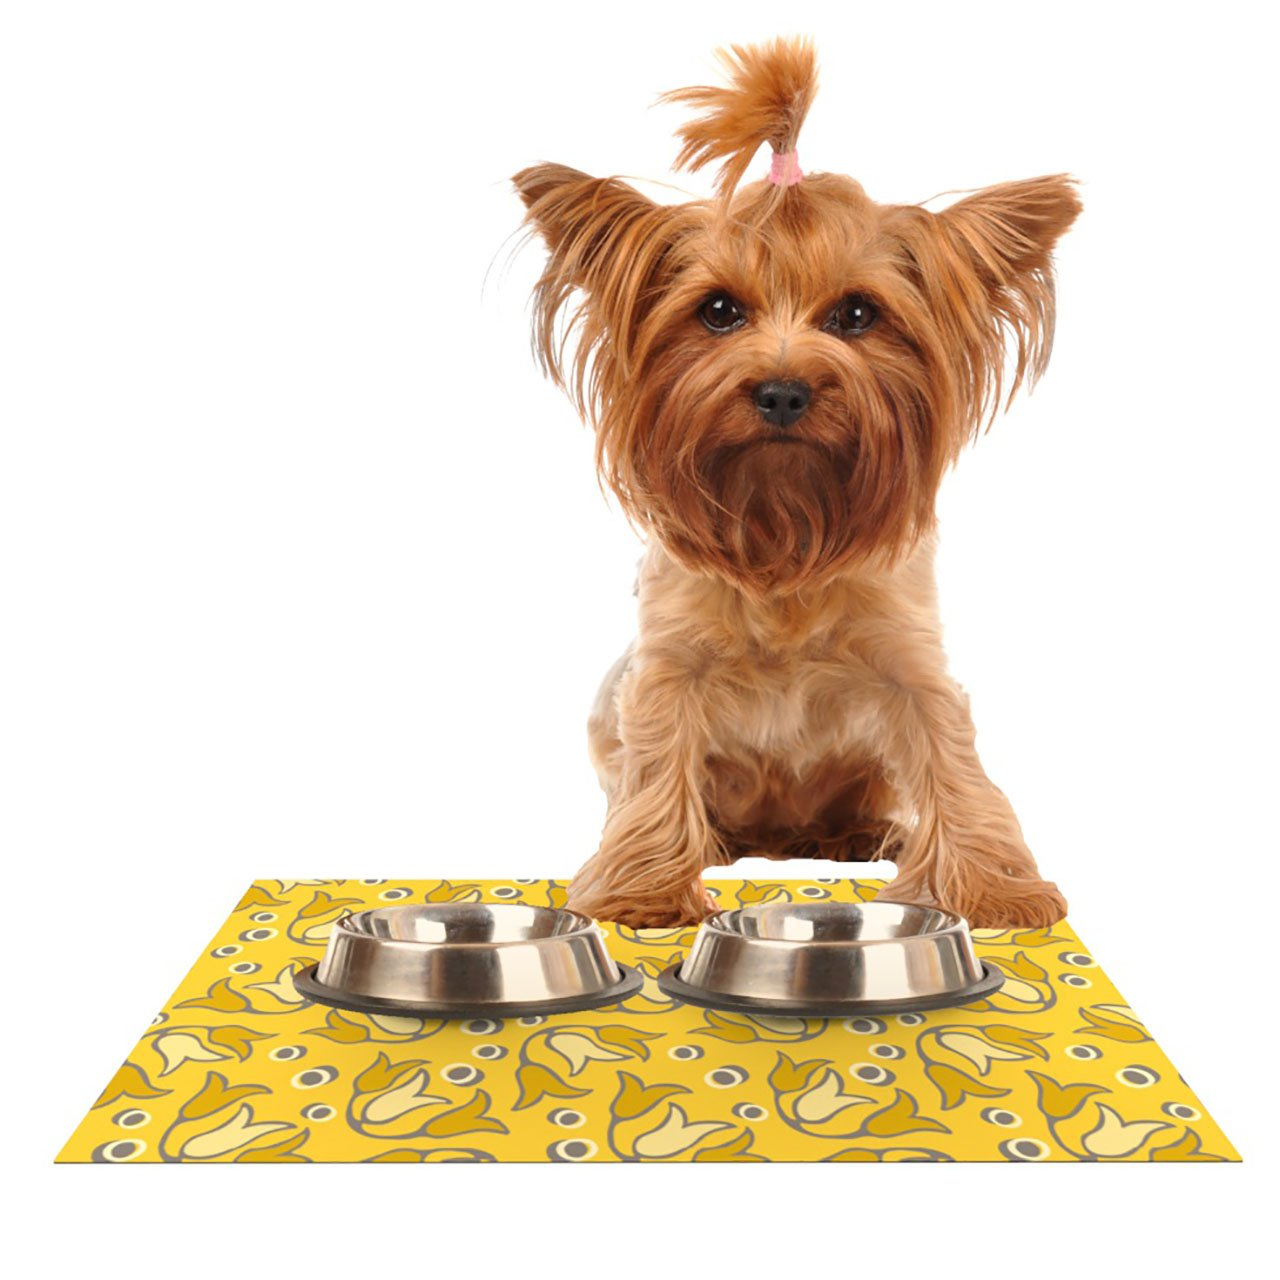 Kess InHouse Suzie Tremel Tulip Toss  Pet Bowl Placemat for Dog and Cat Feeding Mat, 18 by 13-Inch, Yellow Petals